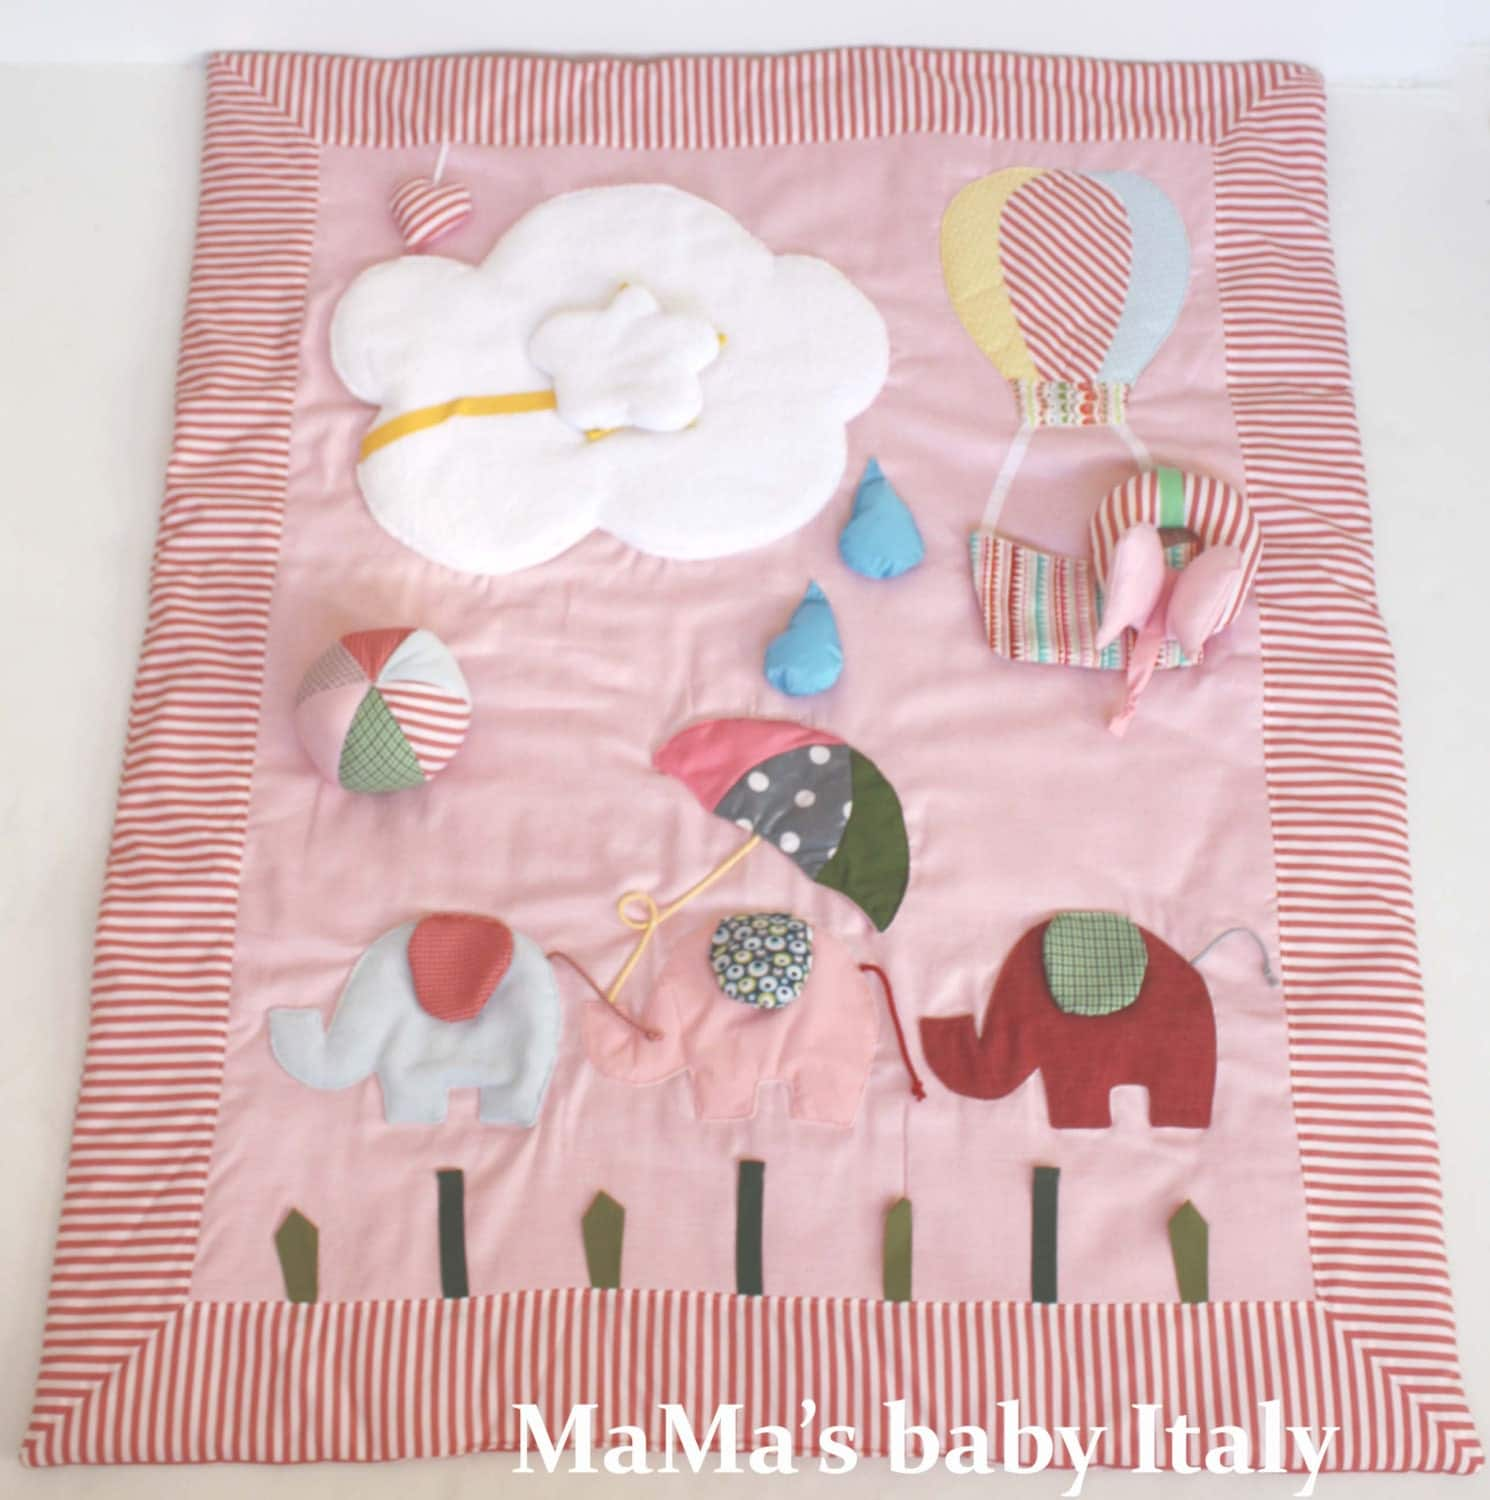 Playmat activity playmat baby busy blanket play mat